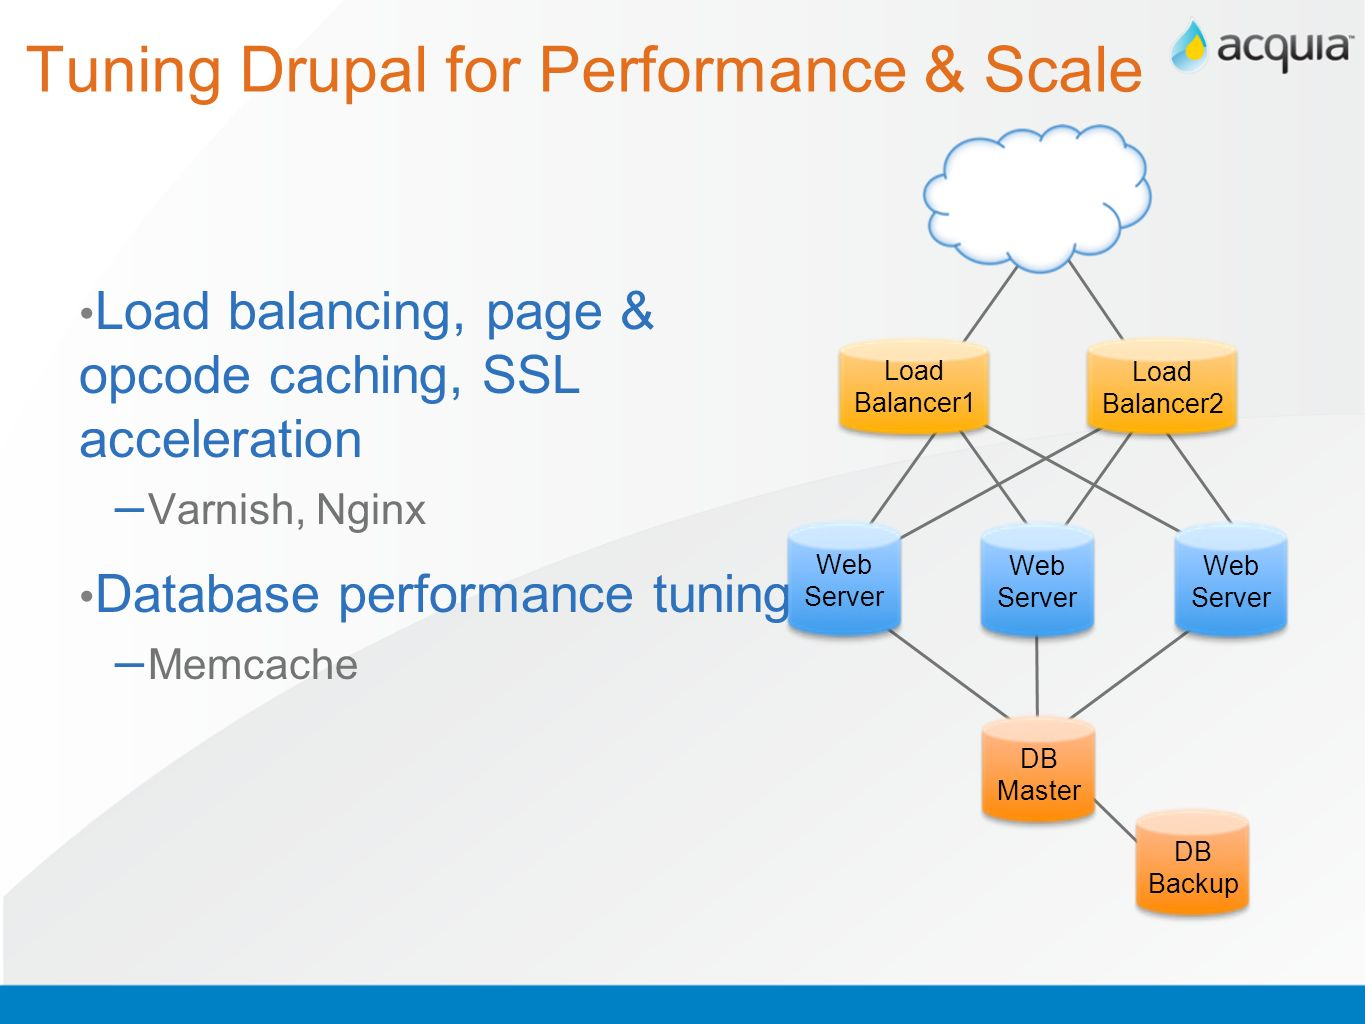 Tuning Drupal for Performance & Scale